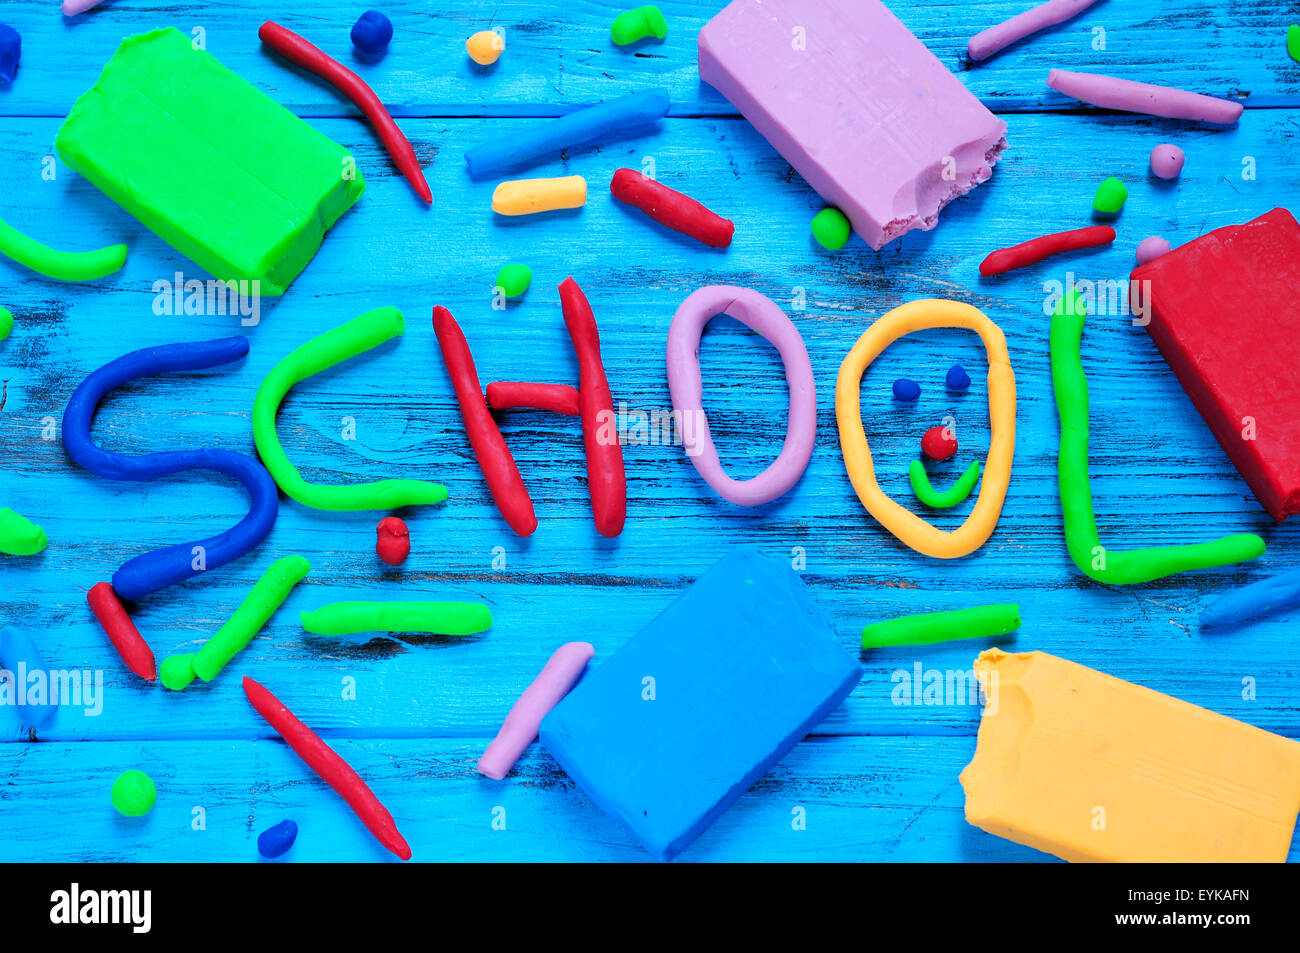 the word school written with modelling clay of different colors on a blue rustic wooden background - Stock Image